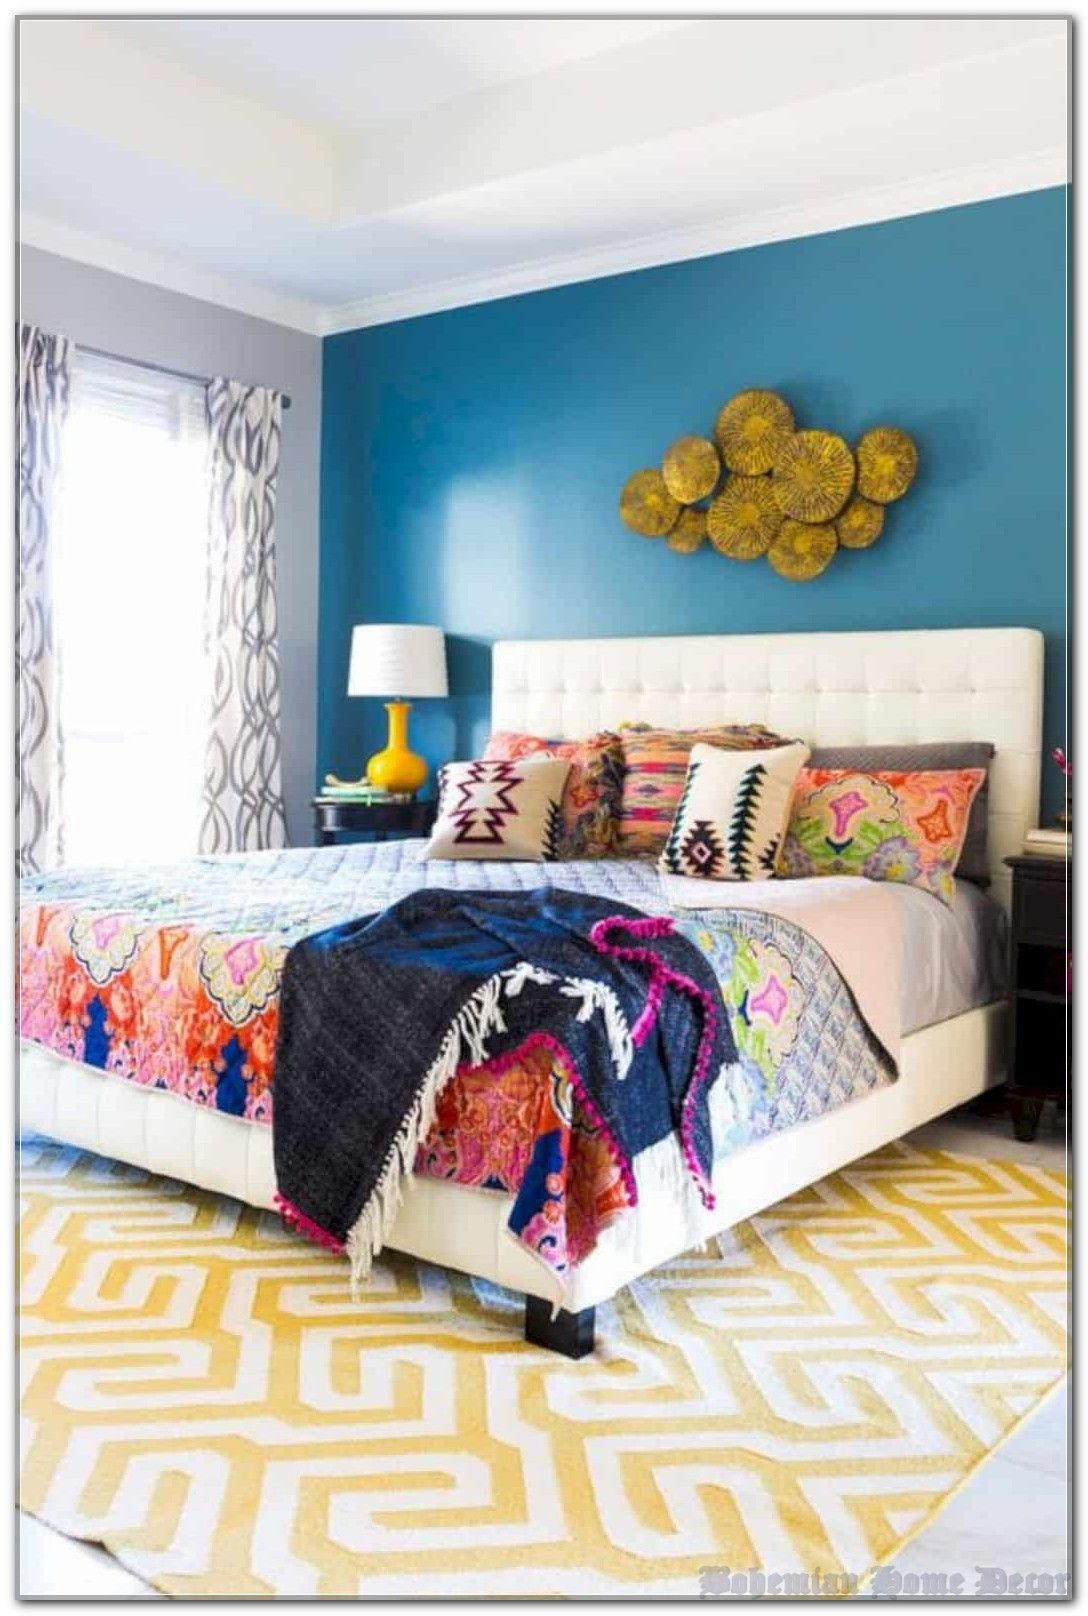 How To Make Your Product Stand Out With Bohemian Home Decor